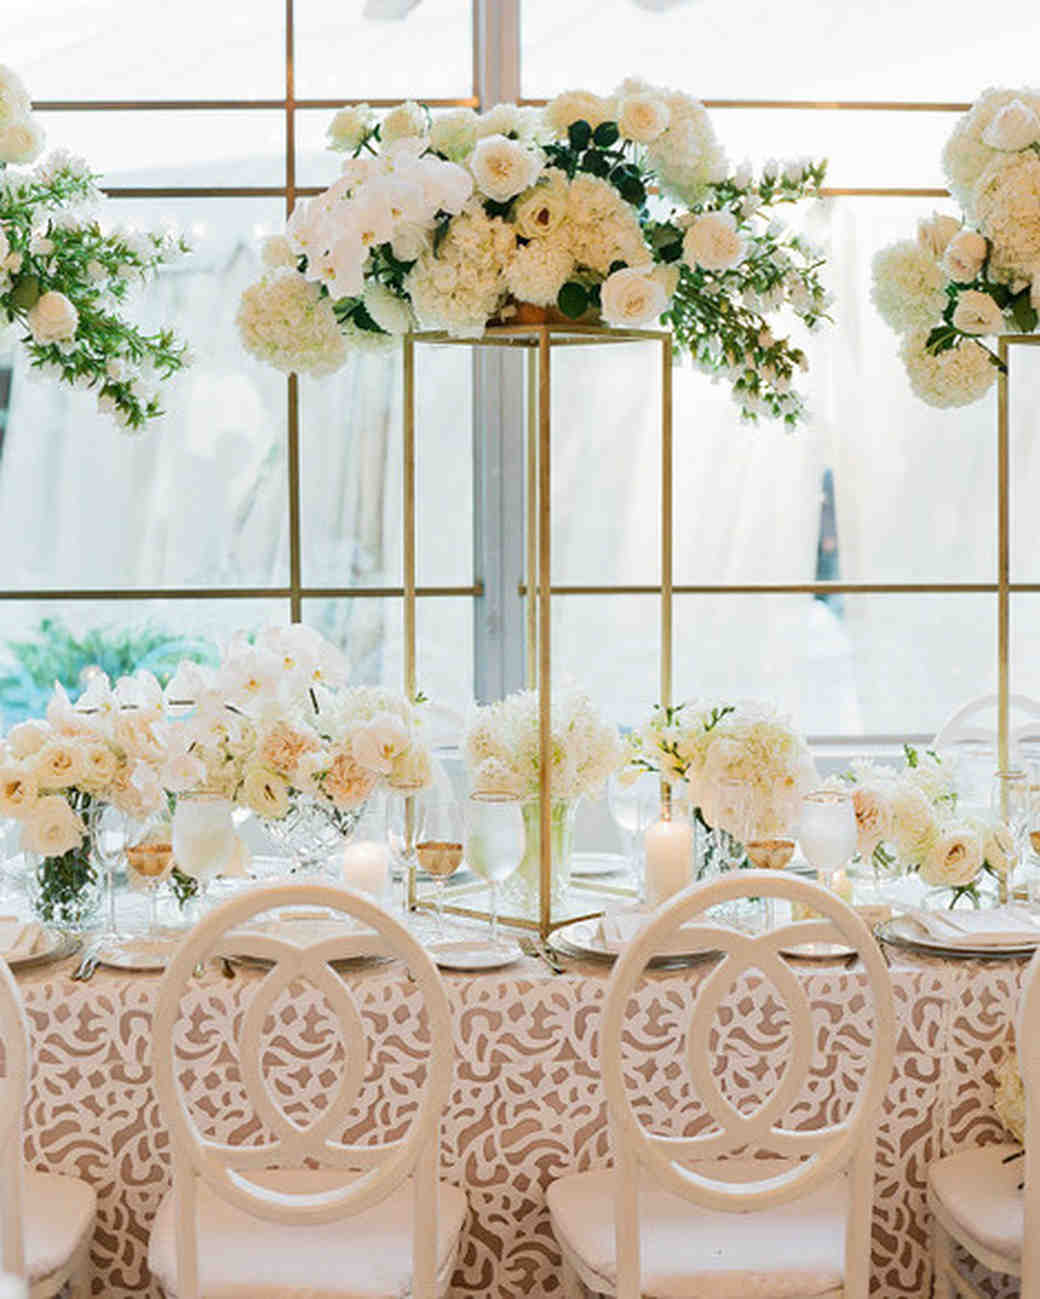 13 New Wedding Trends to Watch for in 2018, According to ...